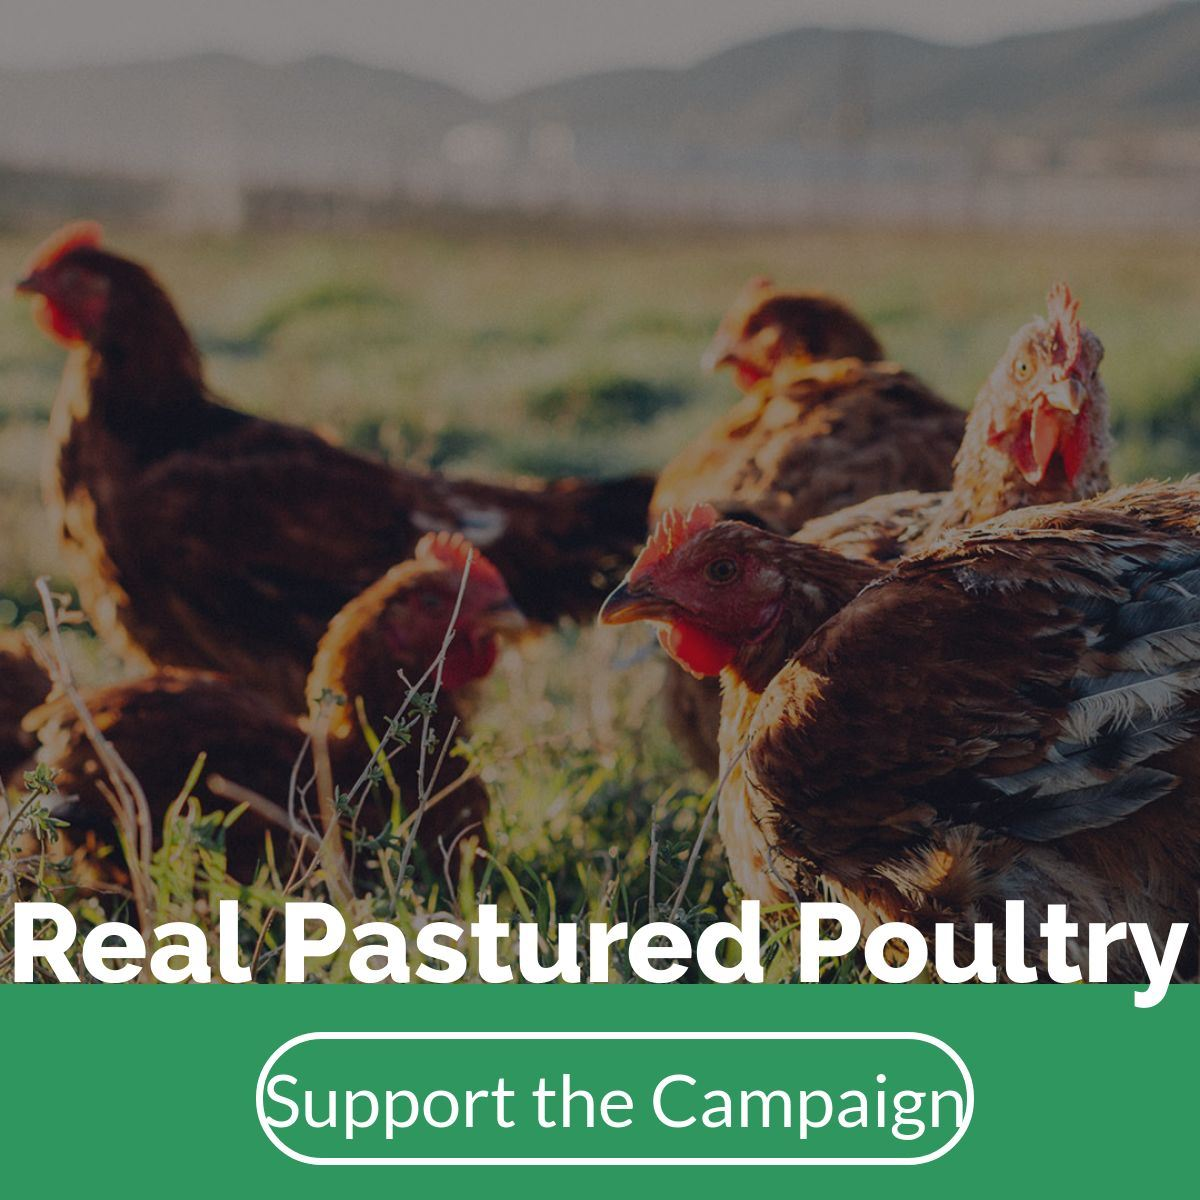 pastured poultry marketing campaign